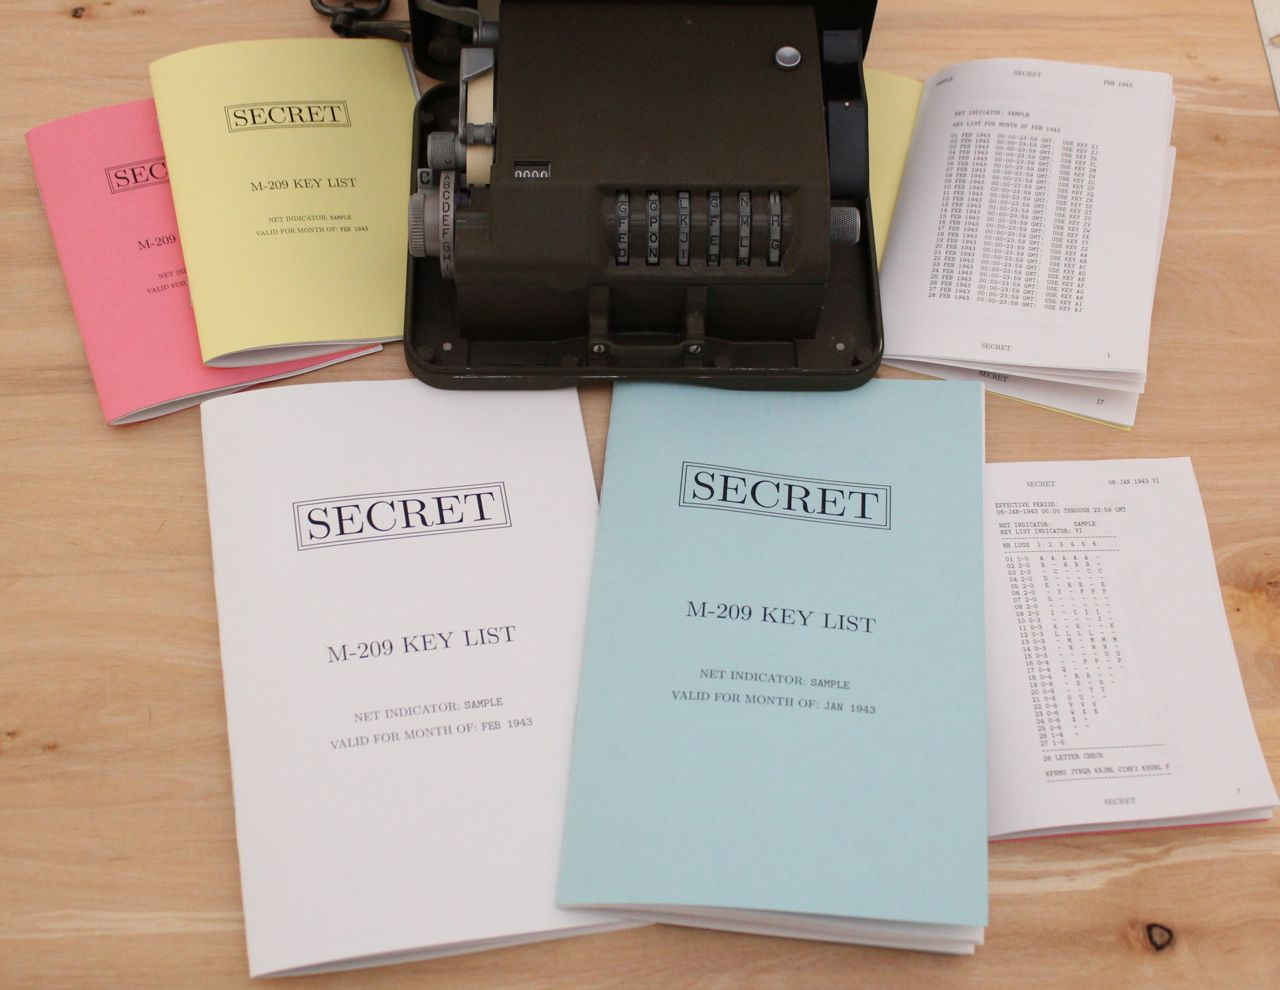 Small and Large Key List Booklets Arranged Around an M-209